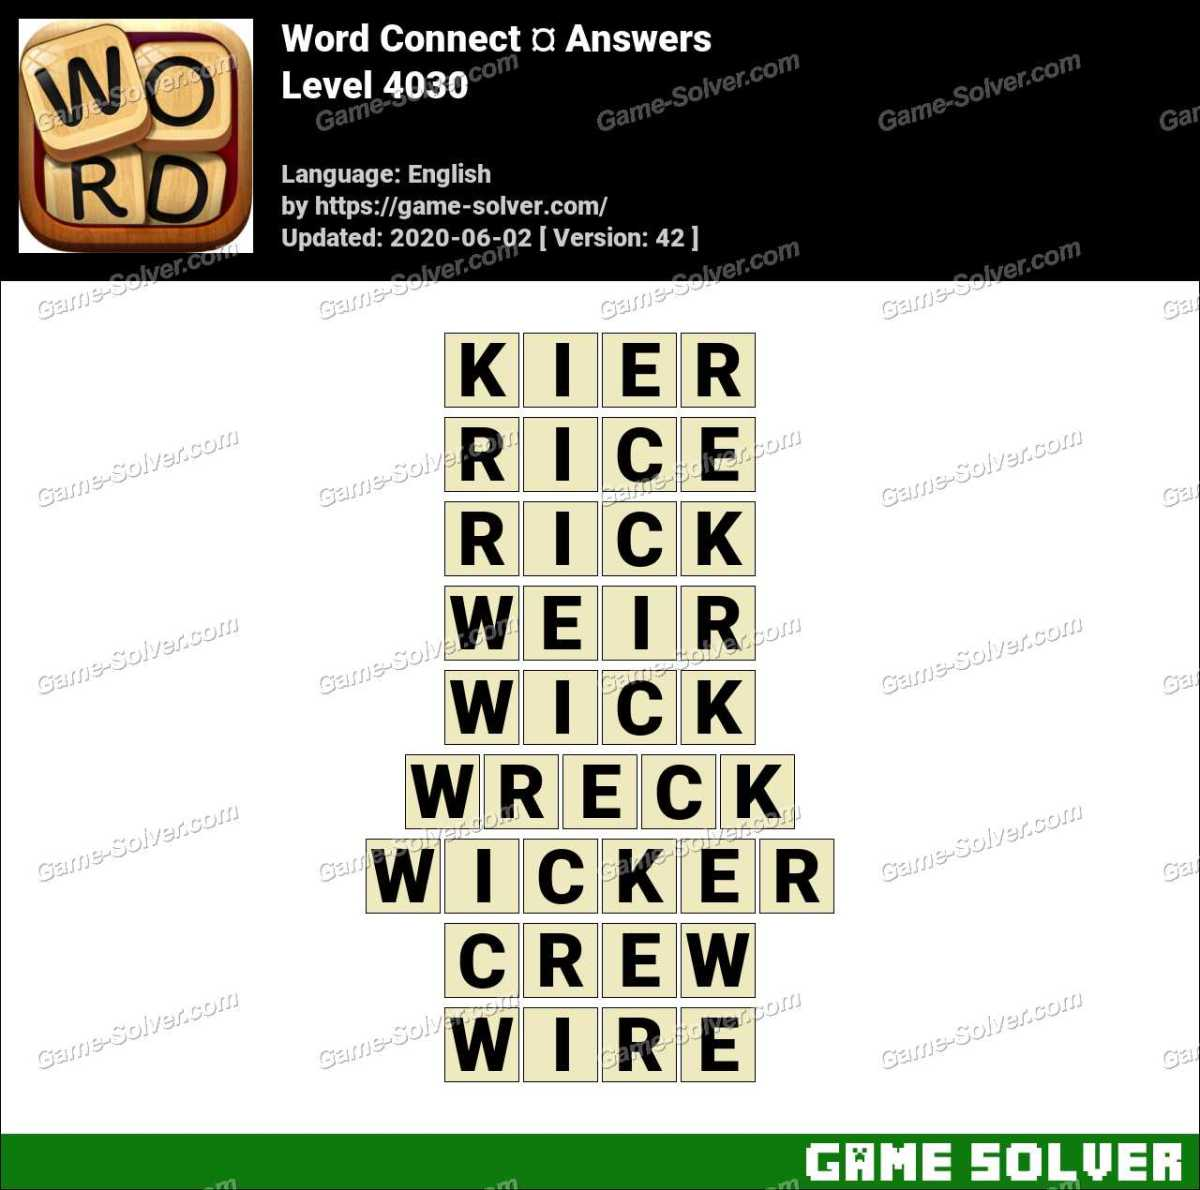 Word Connect Level 4030 Answers